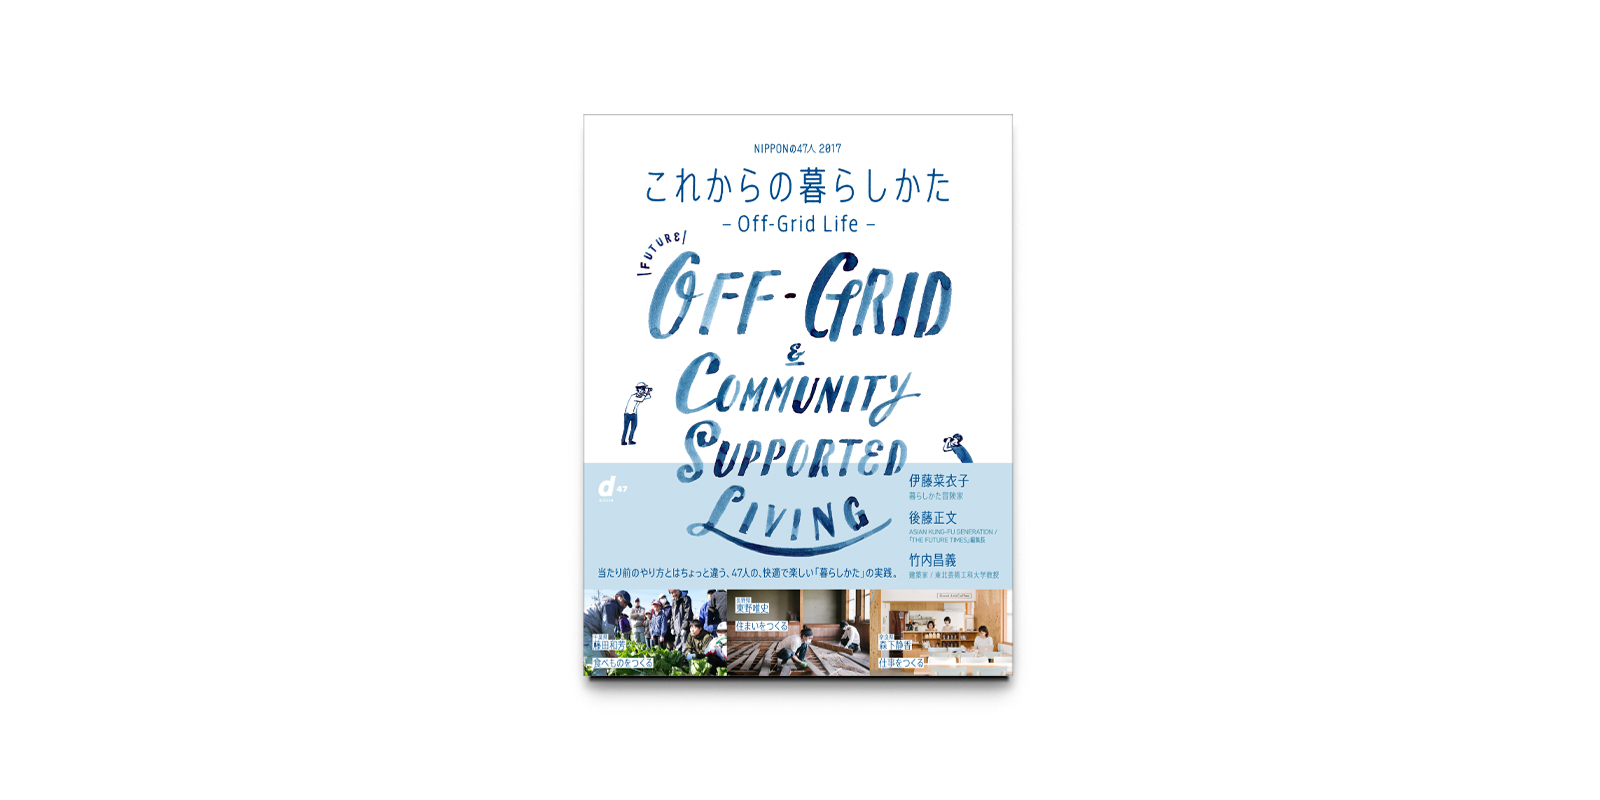 d47 MUSEUM「NIPPON の47人 2017 これからの暮らしかた Off-grid Life」展 公式書籍